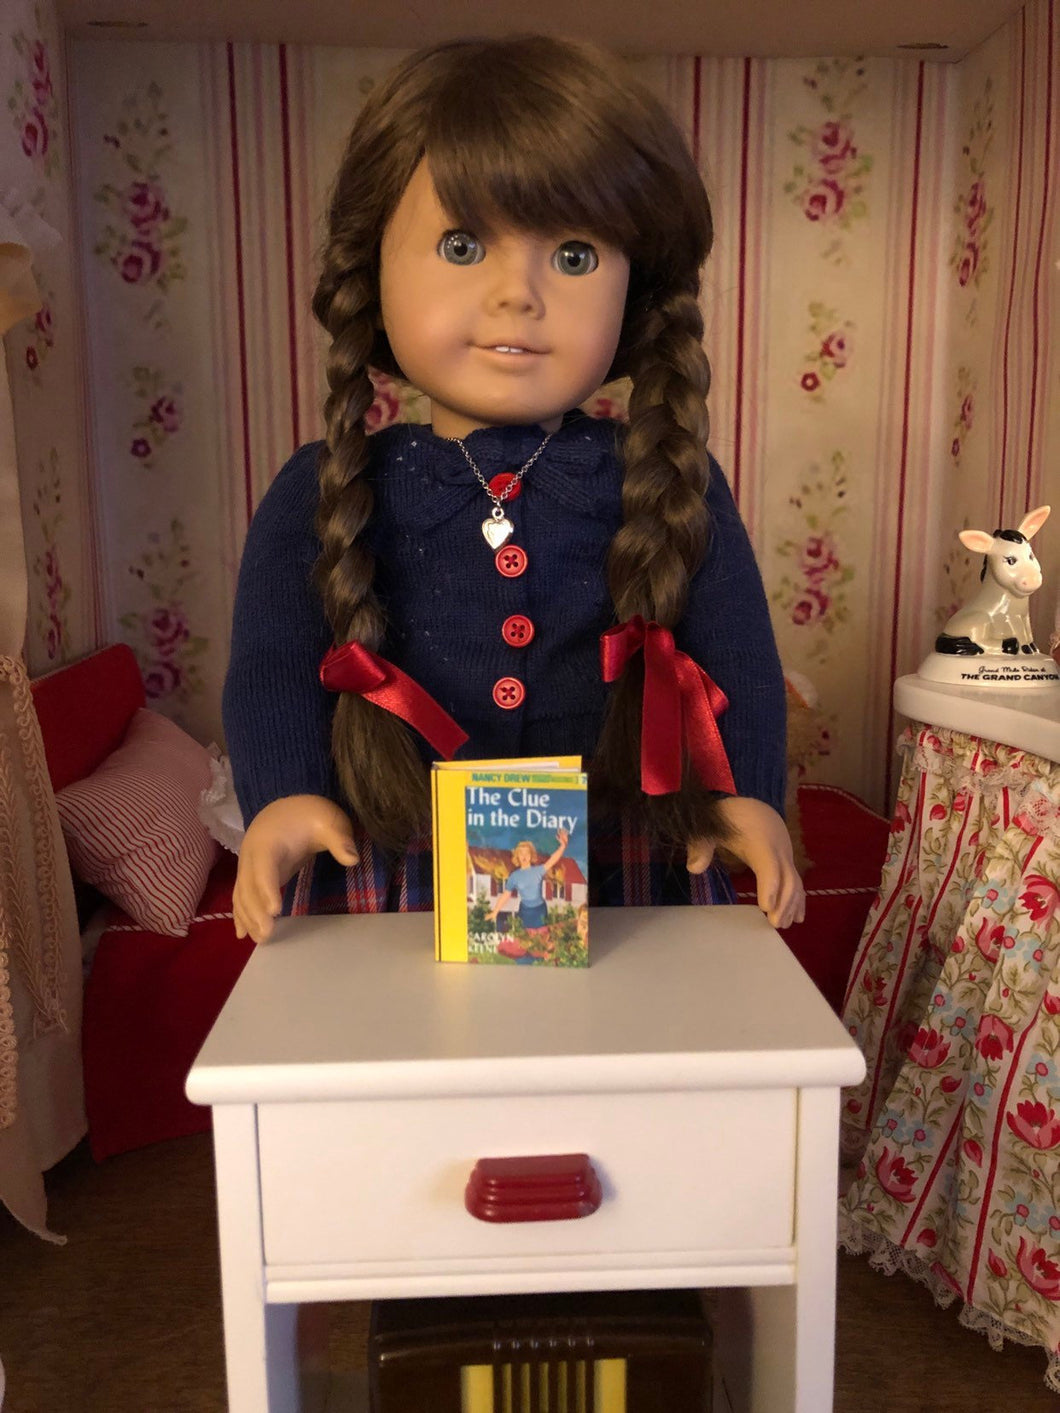 The Clue in the Diary mini 1:3 scale book for American Girl 18